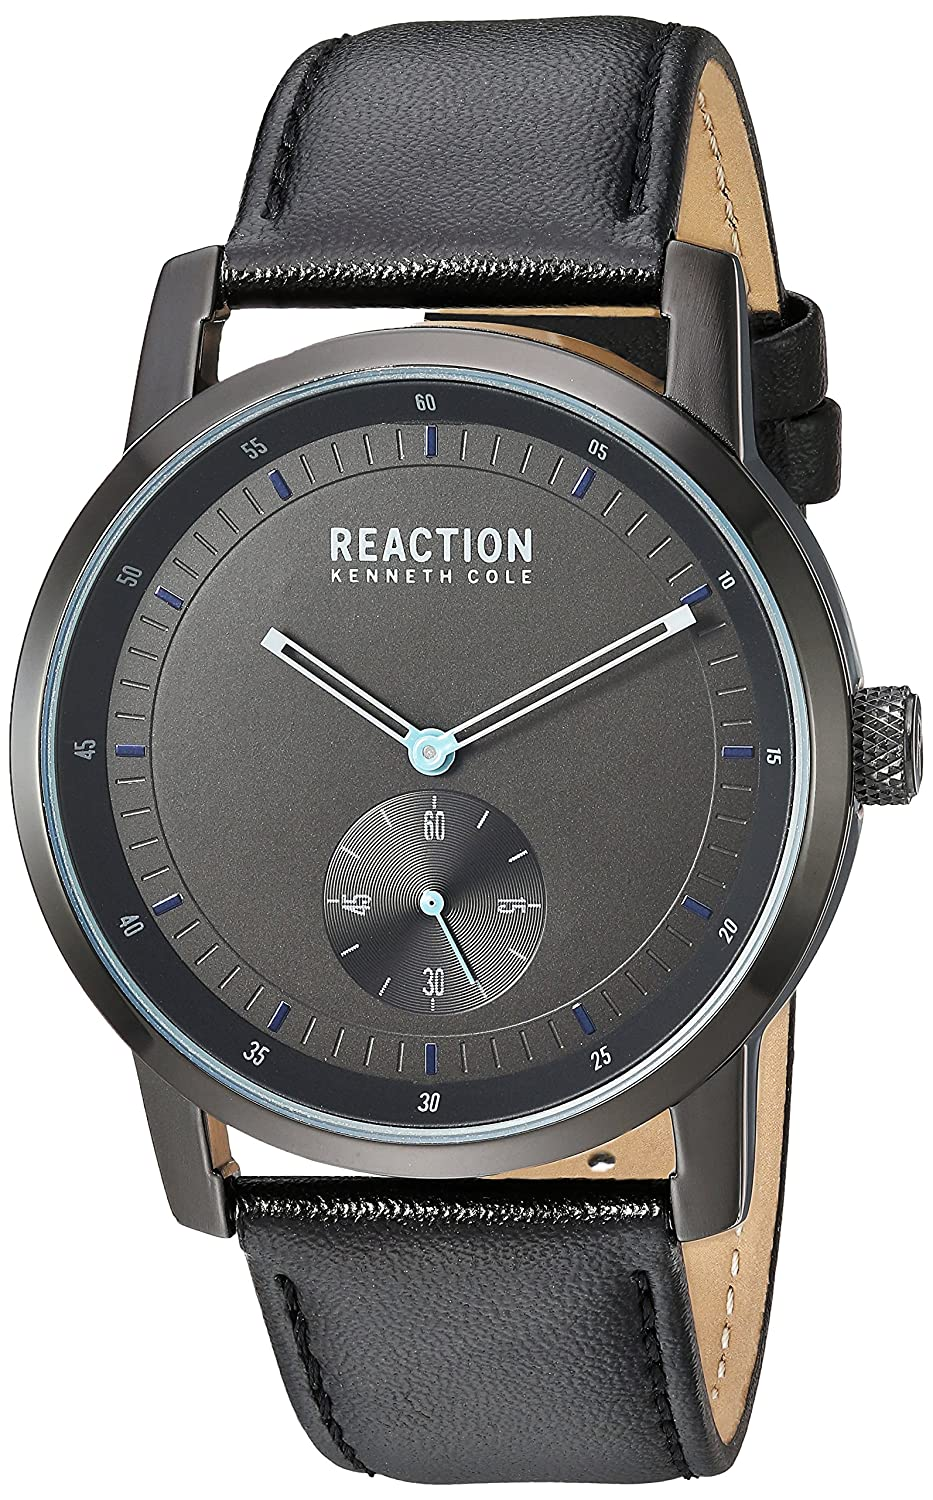 9ccaaa356b8d kenneth cole reaction Men  s Metal de cuarzo reloj Casual